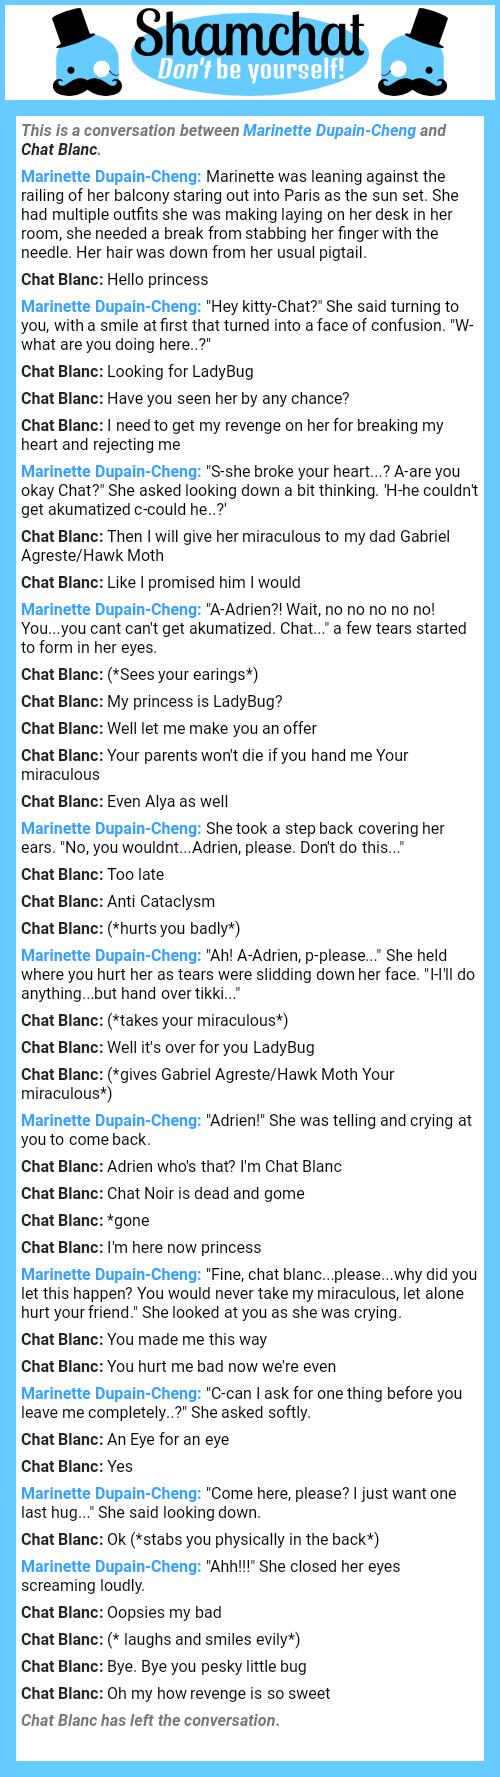 A conversation between Chat Blanc and Marinette Dupain-Cheng ...